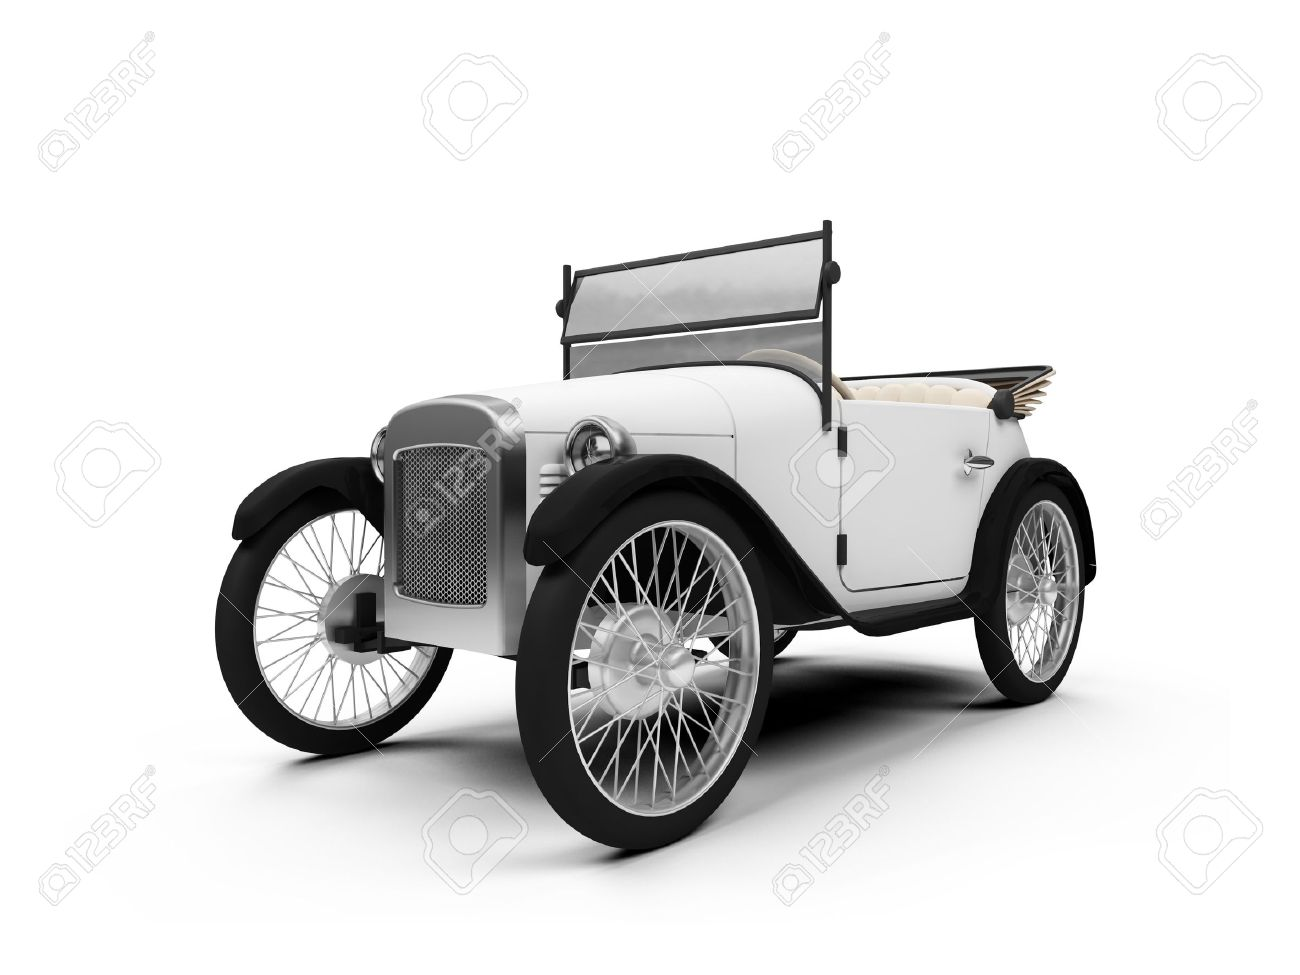 Antique Cars Stock Vector Illustration And Royalty Free